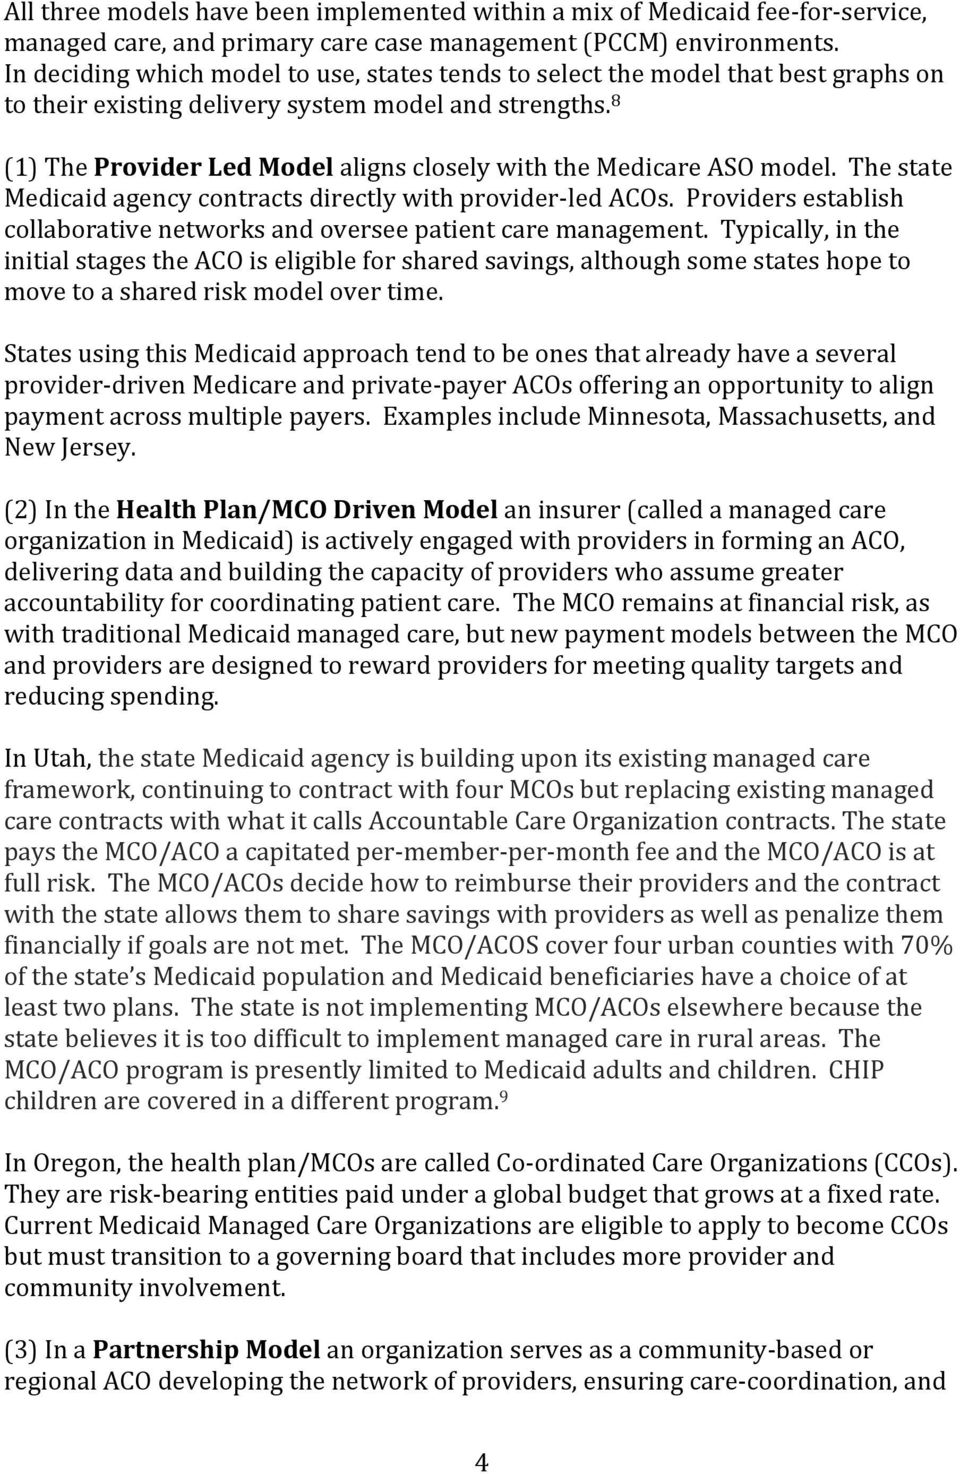 8 (1) The Provider Led Model aligns closely with the Medicare ASO model. The state Medicaid agency contracts directly with provider- led ACOs.